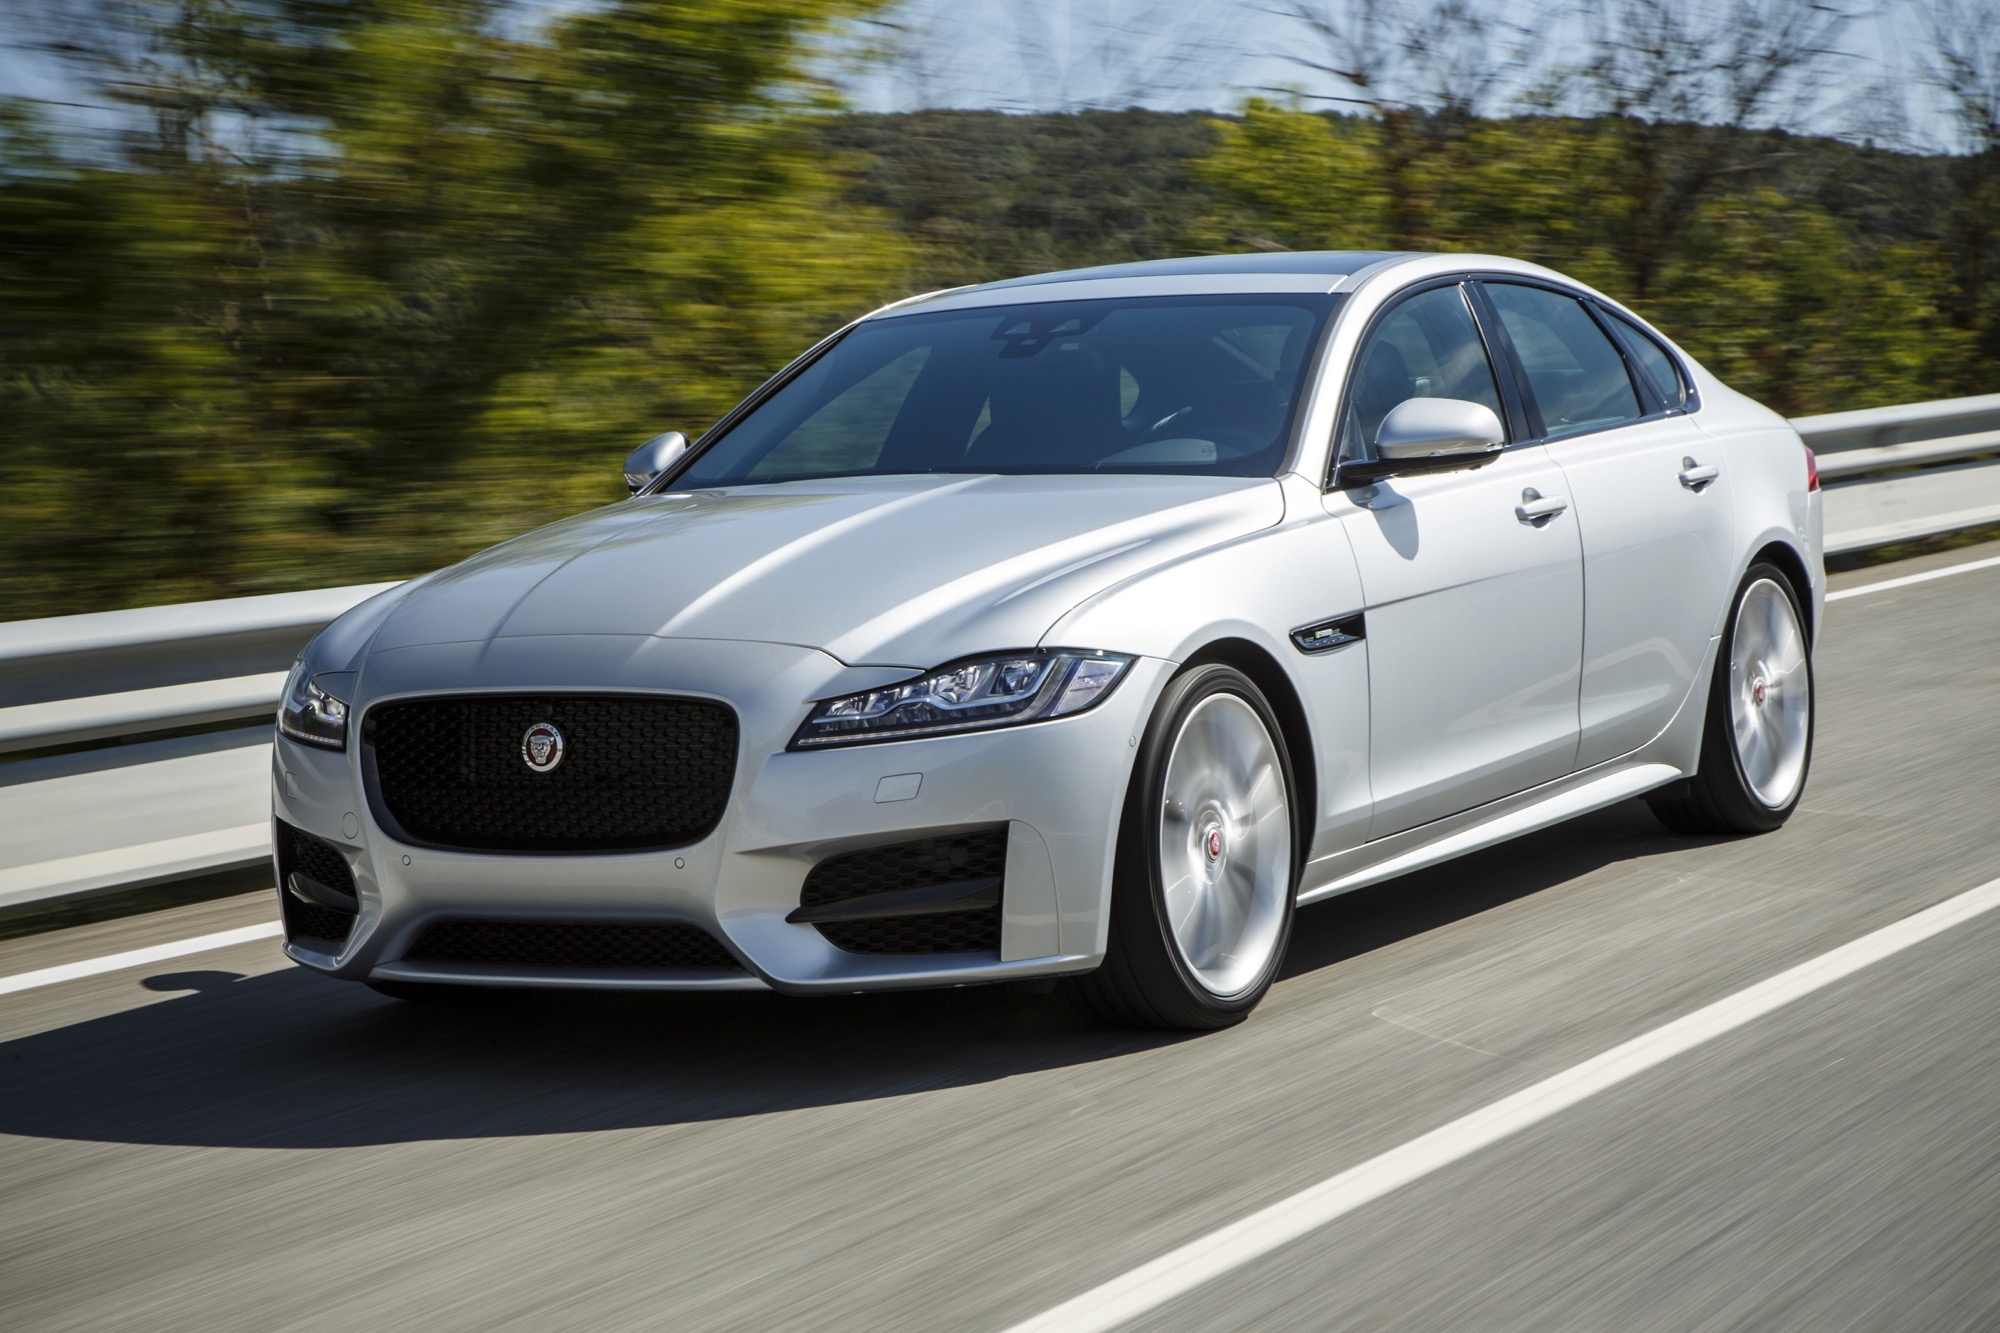 Mitsubishi Suv 2015 >> 2016 Jaguar XF Review - photos | CarAdvice